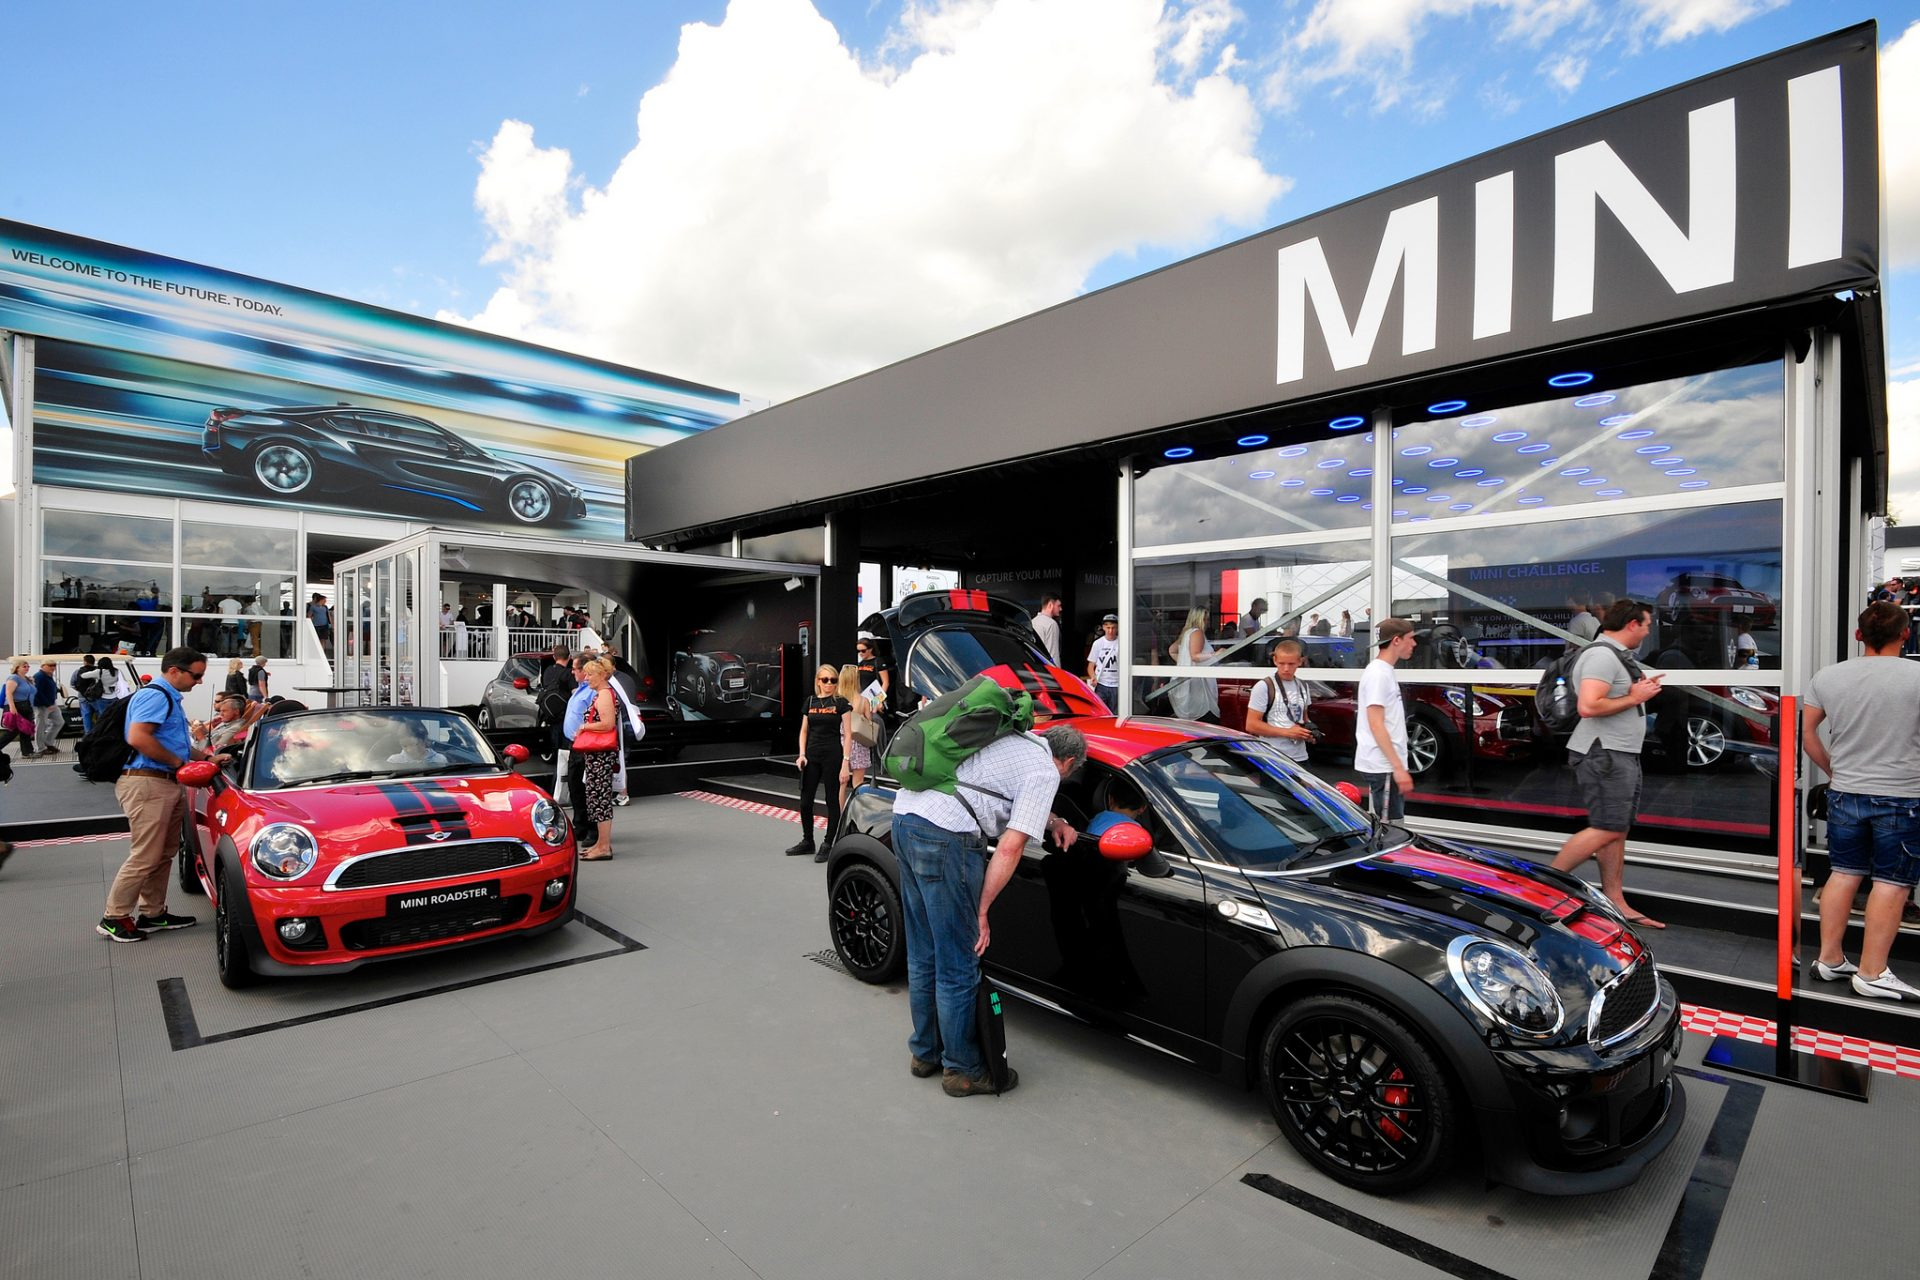 Goodwood event signage, display graphics and building wraps by Octink